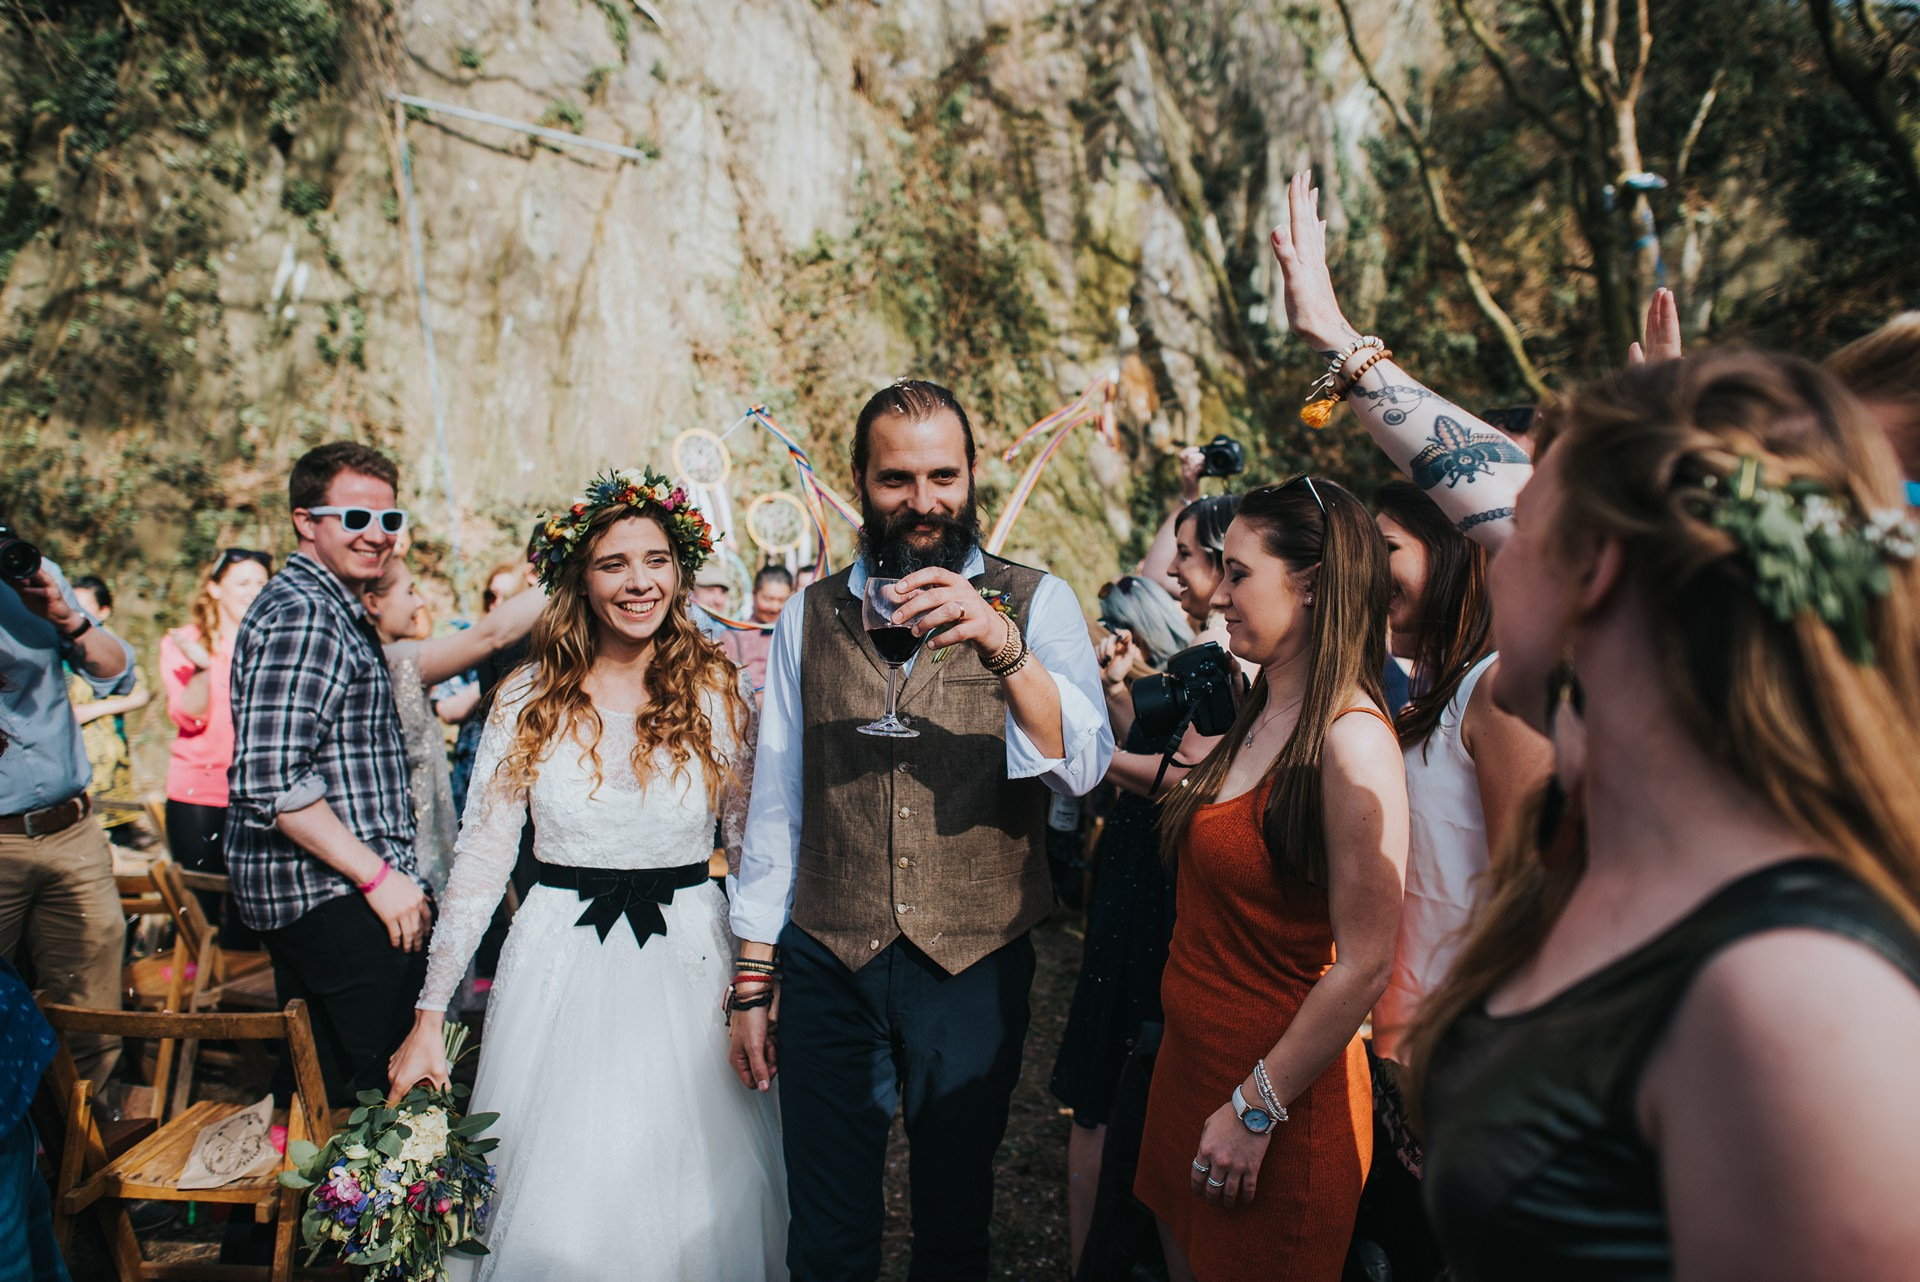 Boho flower crown bride walking down the isle with groom holding a glass of red wine